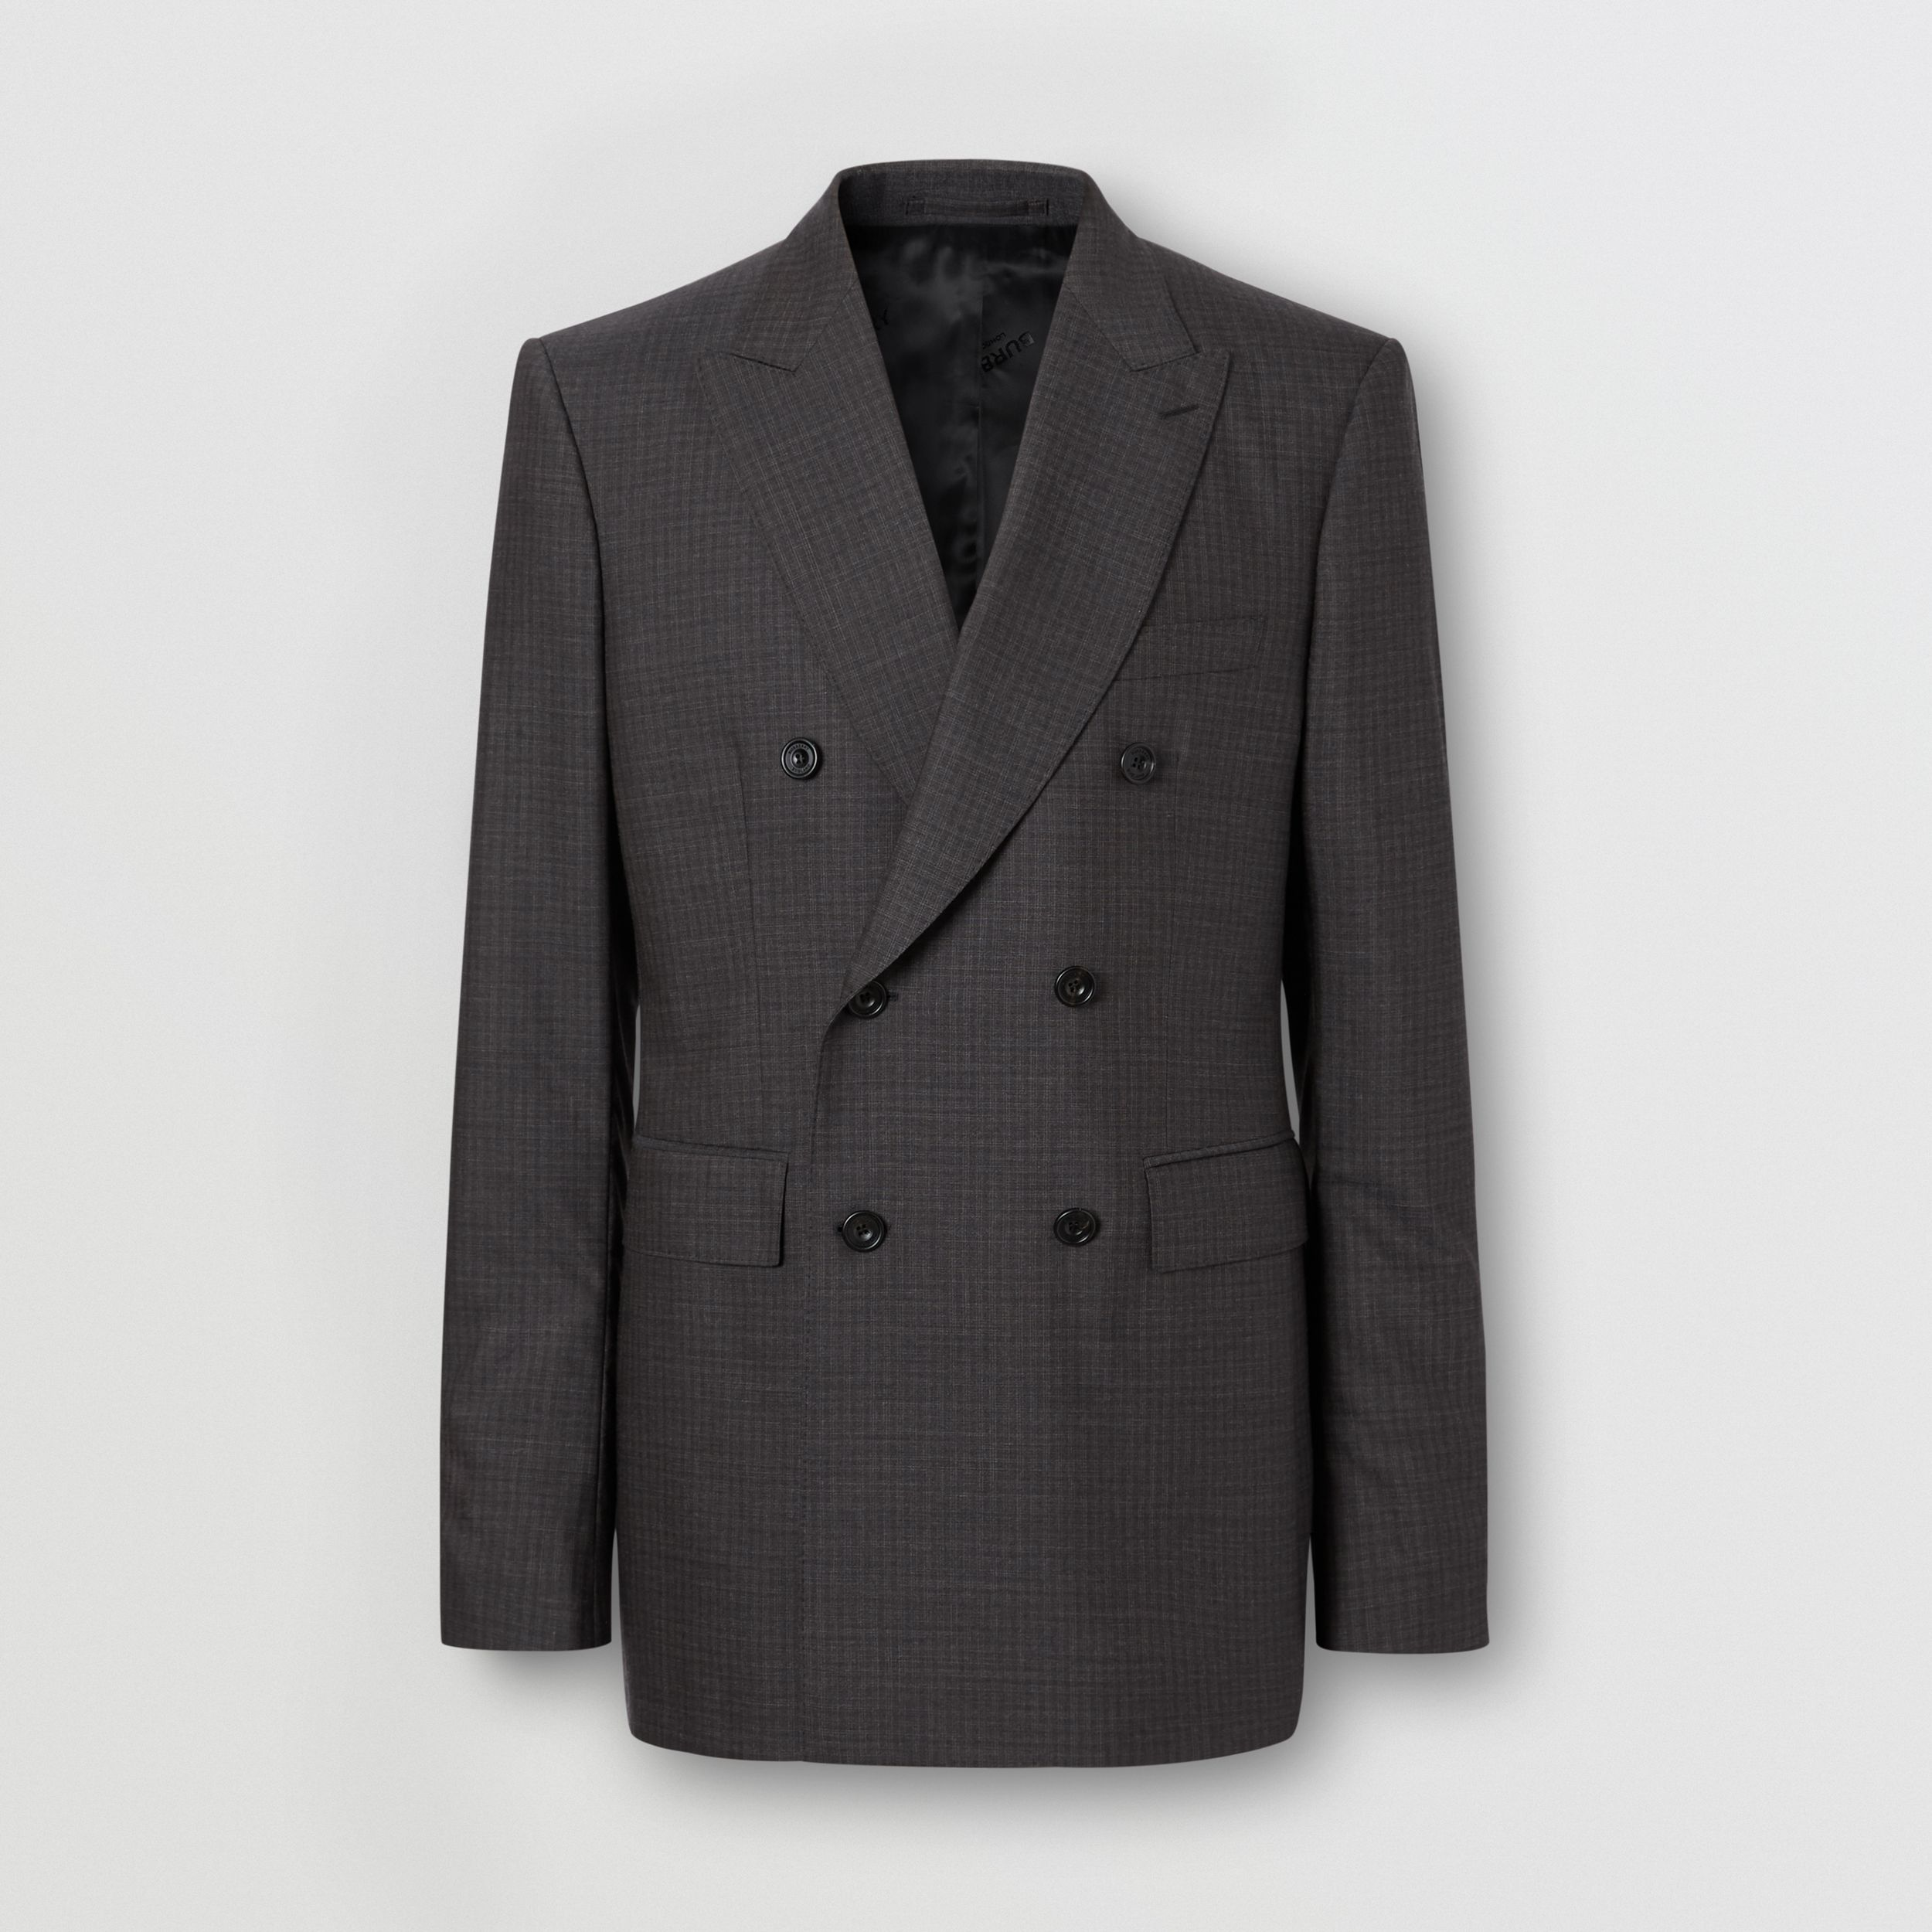 Classic Fit Windowpane Check Wool Silk Suit in Dark Grey - Men | Burberry - 4